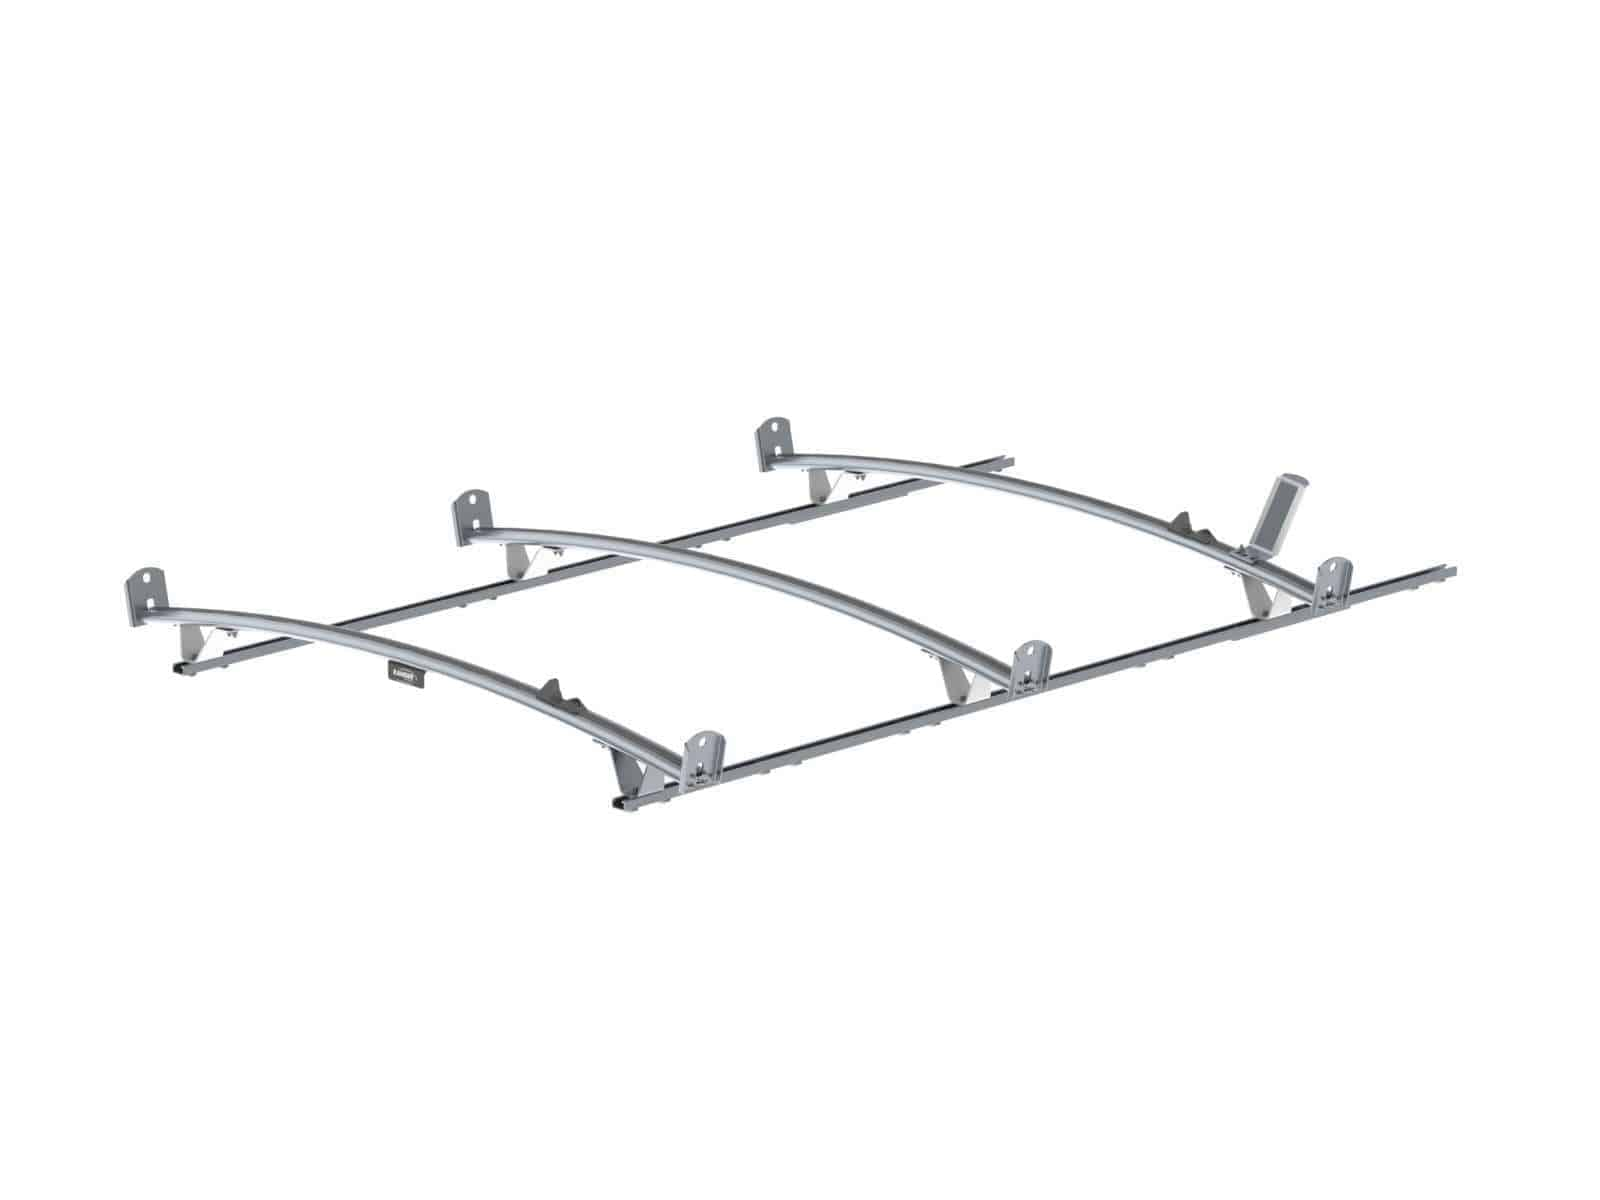 Standard Nissan Nv Ladder Rack 3 Bar System